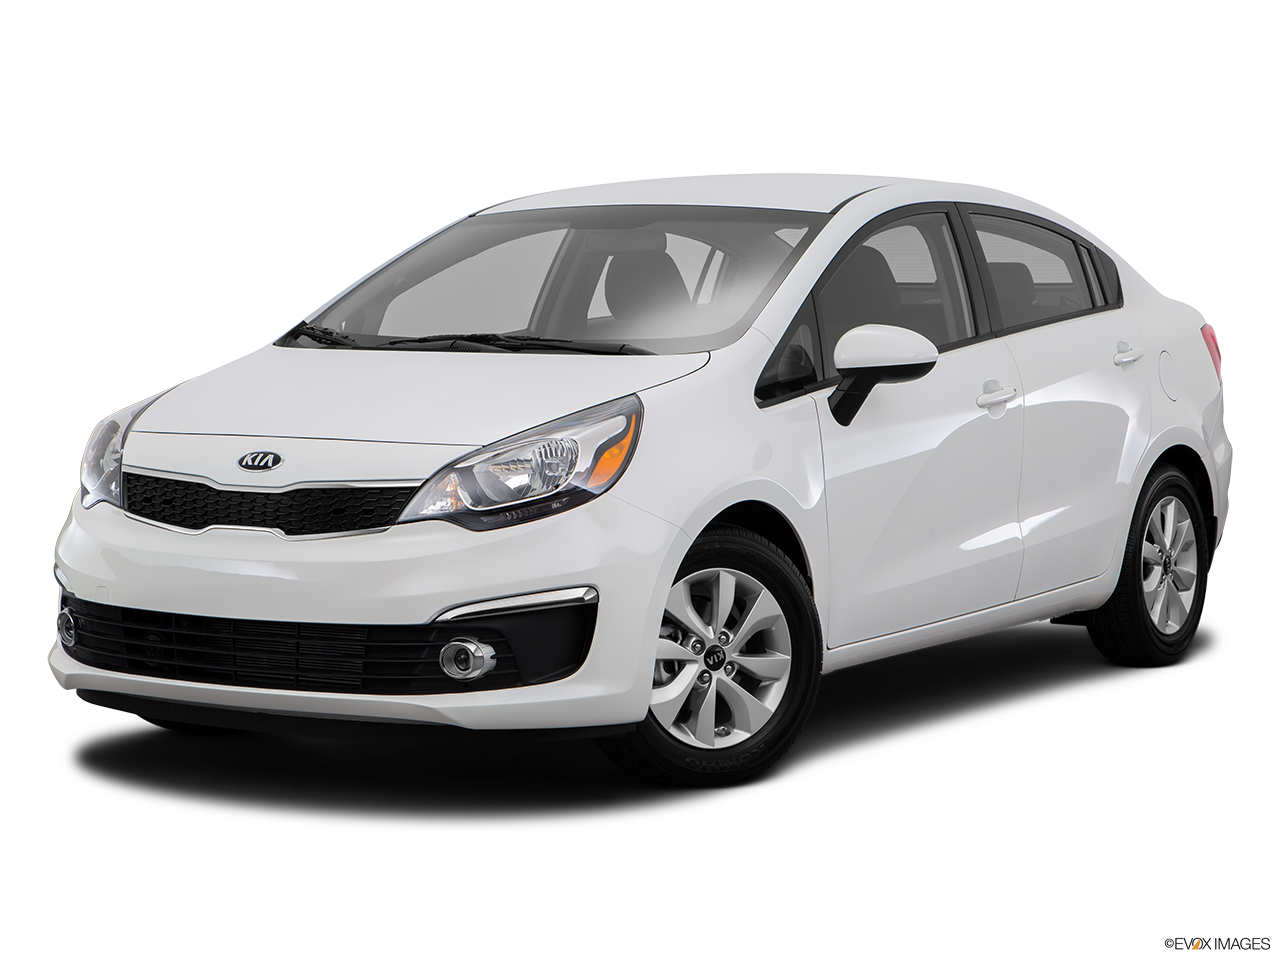 Test Drive A 2016 Kia Rio at Kia of Alhambra in Alhambra